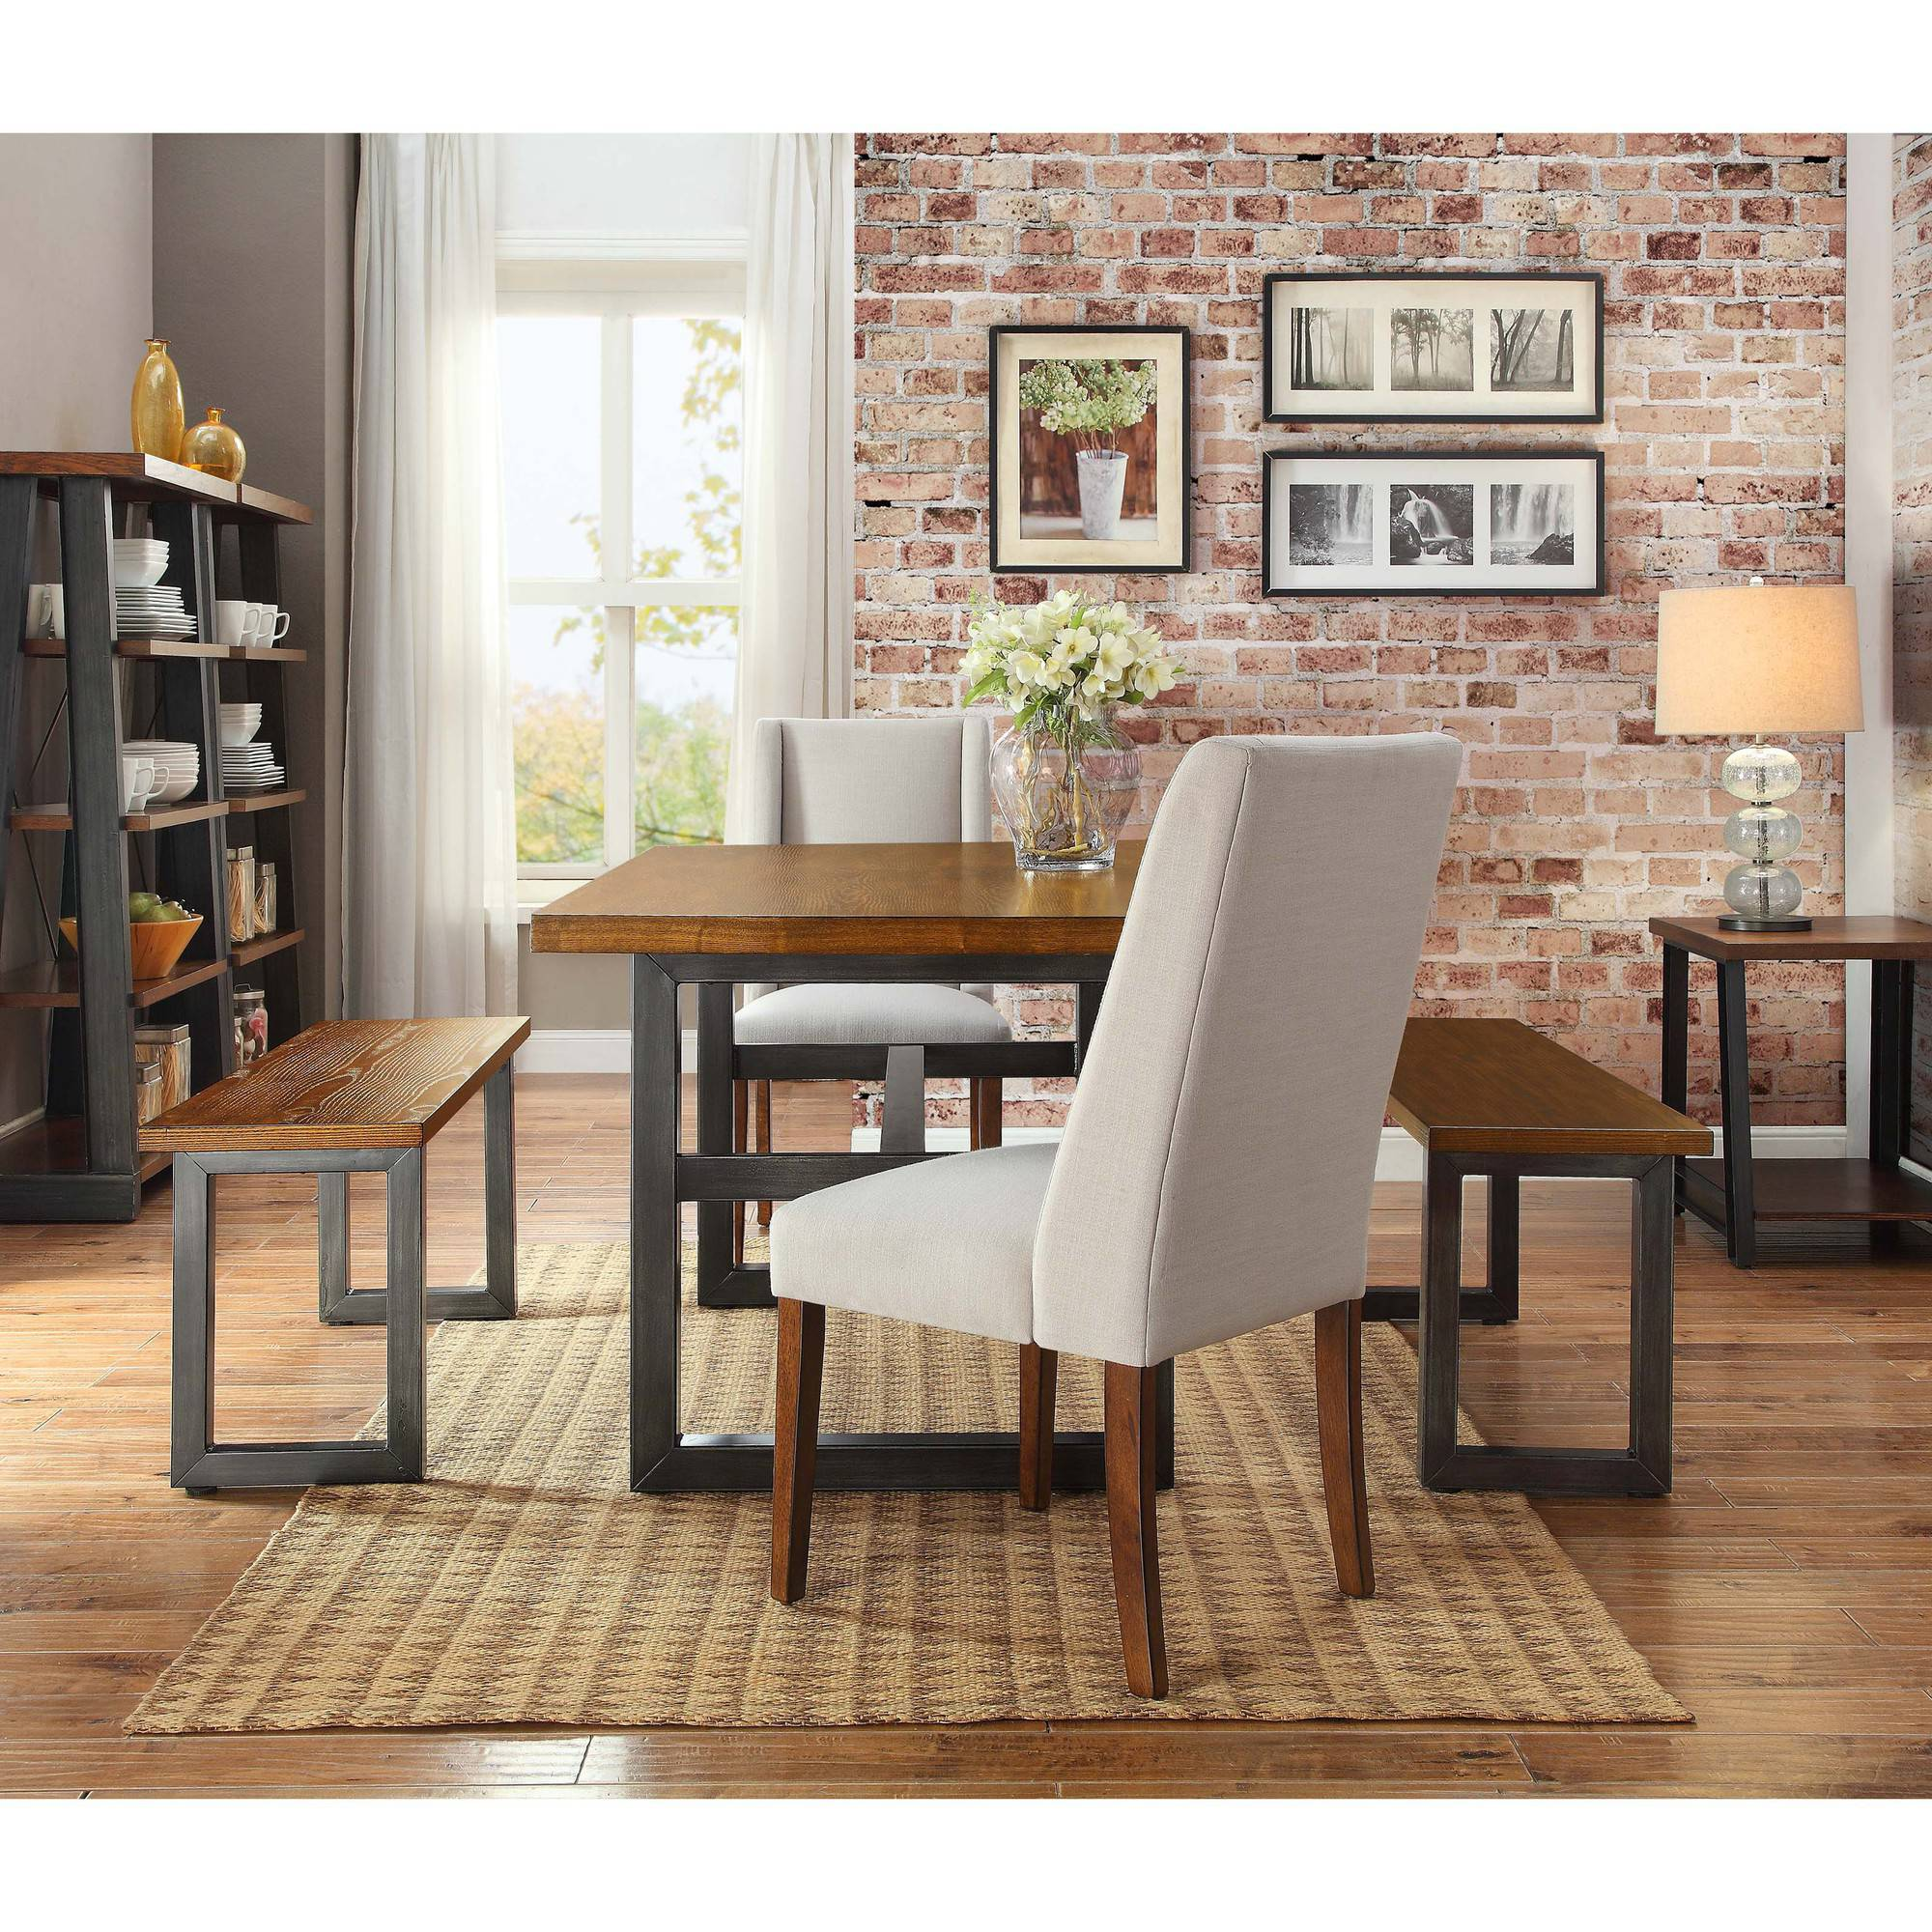 Better Home And Garden chic idea better home and gardens plain design april 2015 Better Homes And Gardens Mercer Dining Table Vintage Oak Finish Walmartcom